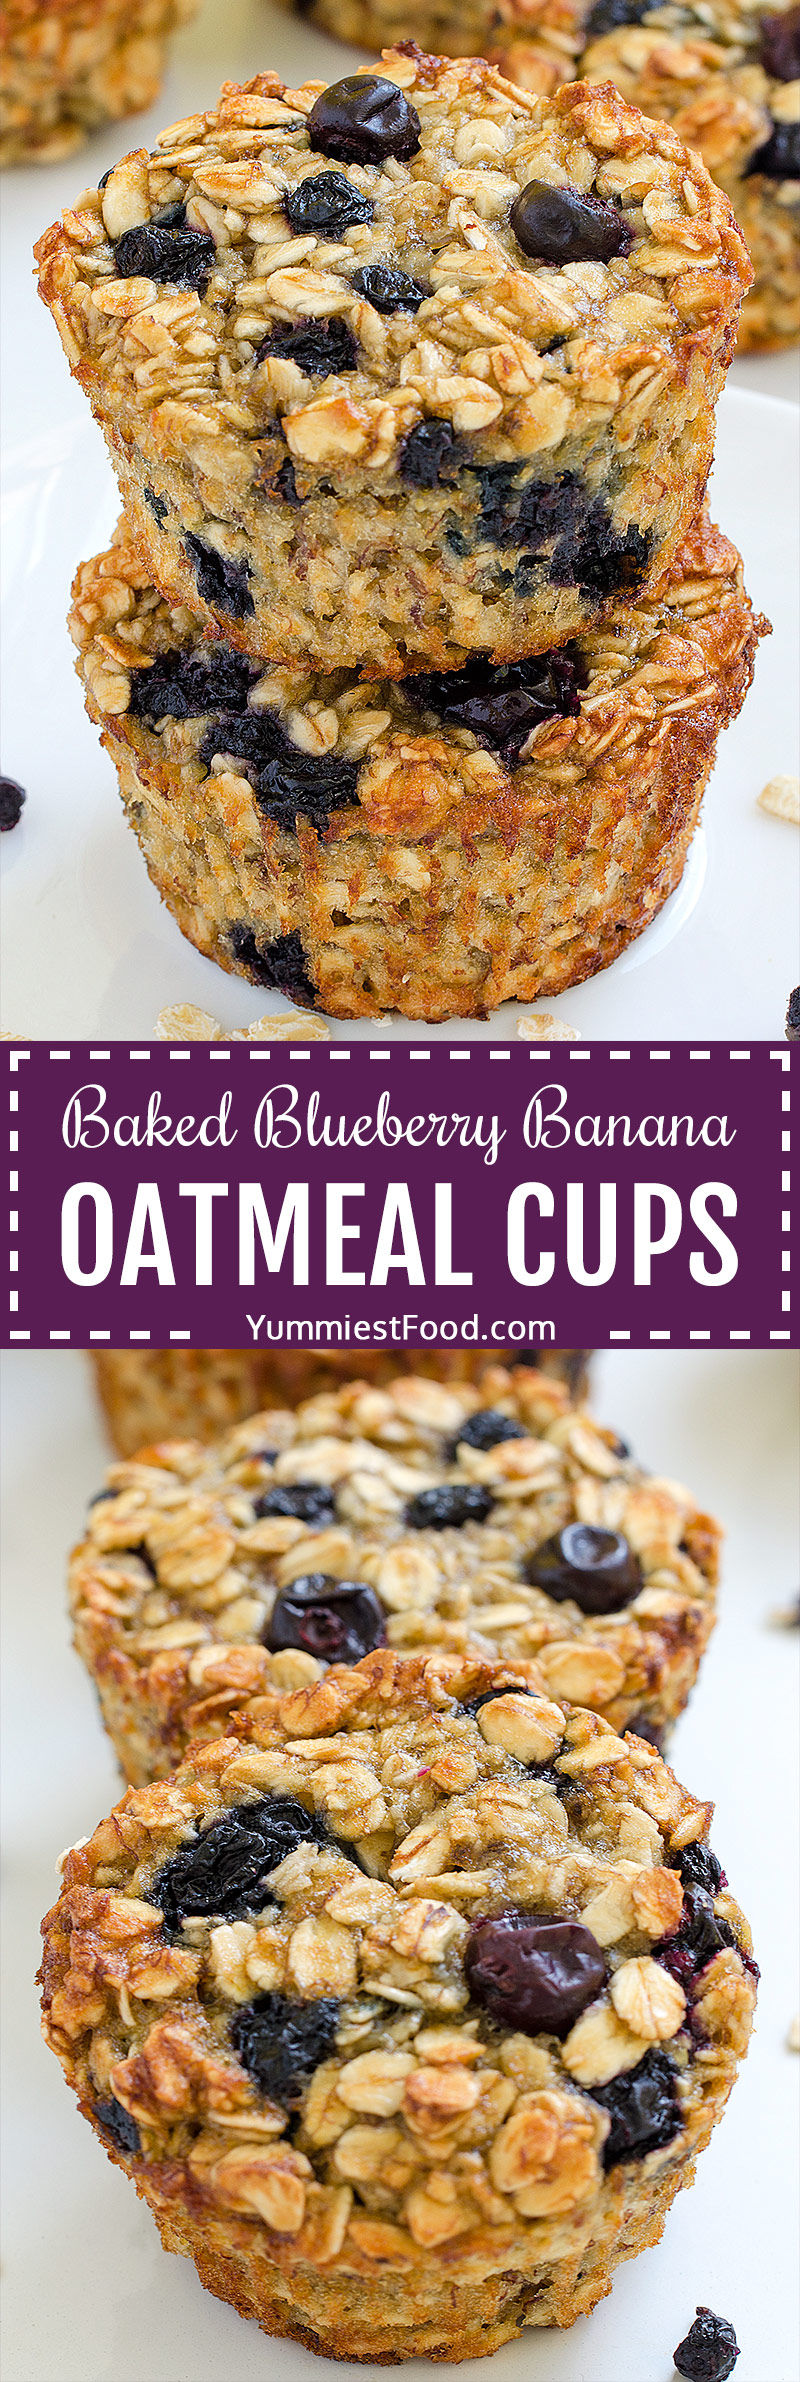 Quick and easy baked Blueberry Banana Oatmeal Cups are the perfect make-ahead breakfast for busy mornings. They are a cross between baked oatmeal and muffins and low in sugar and fat.